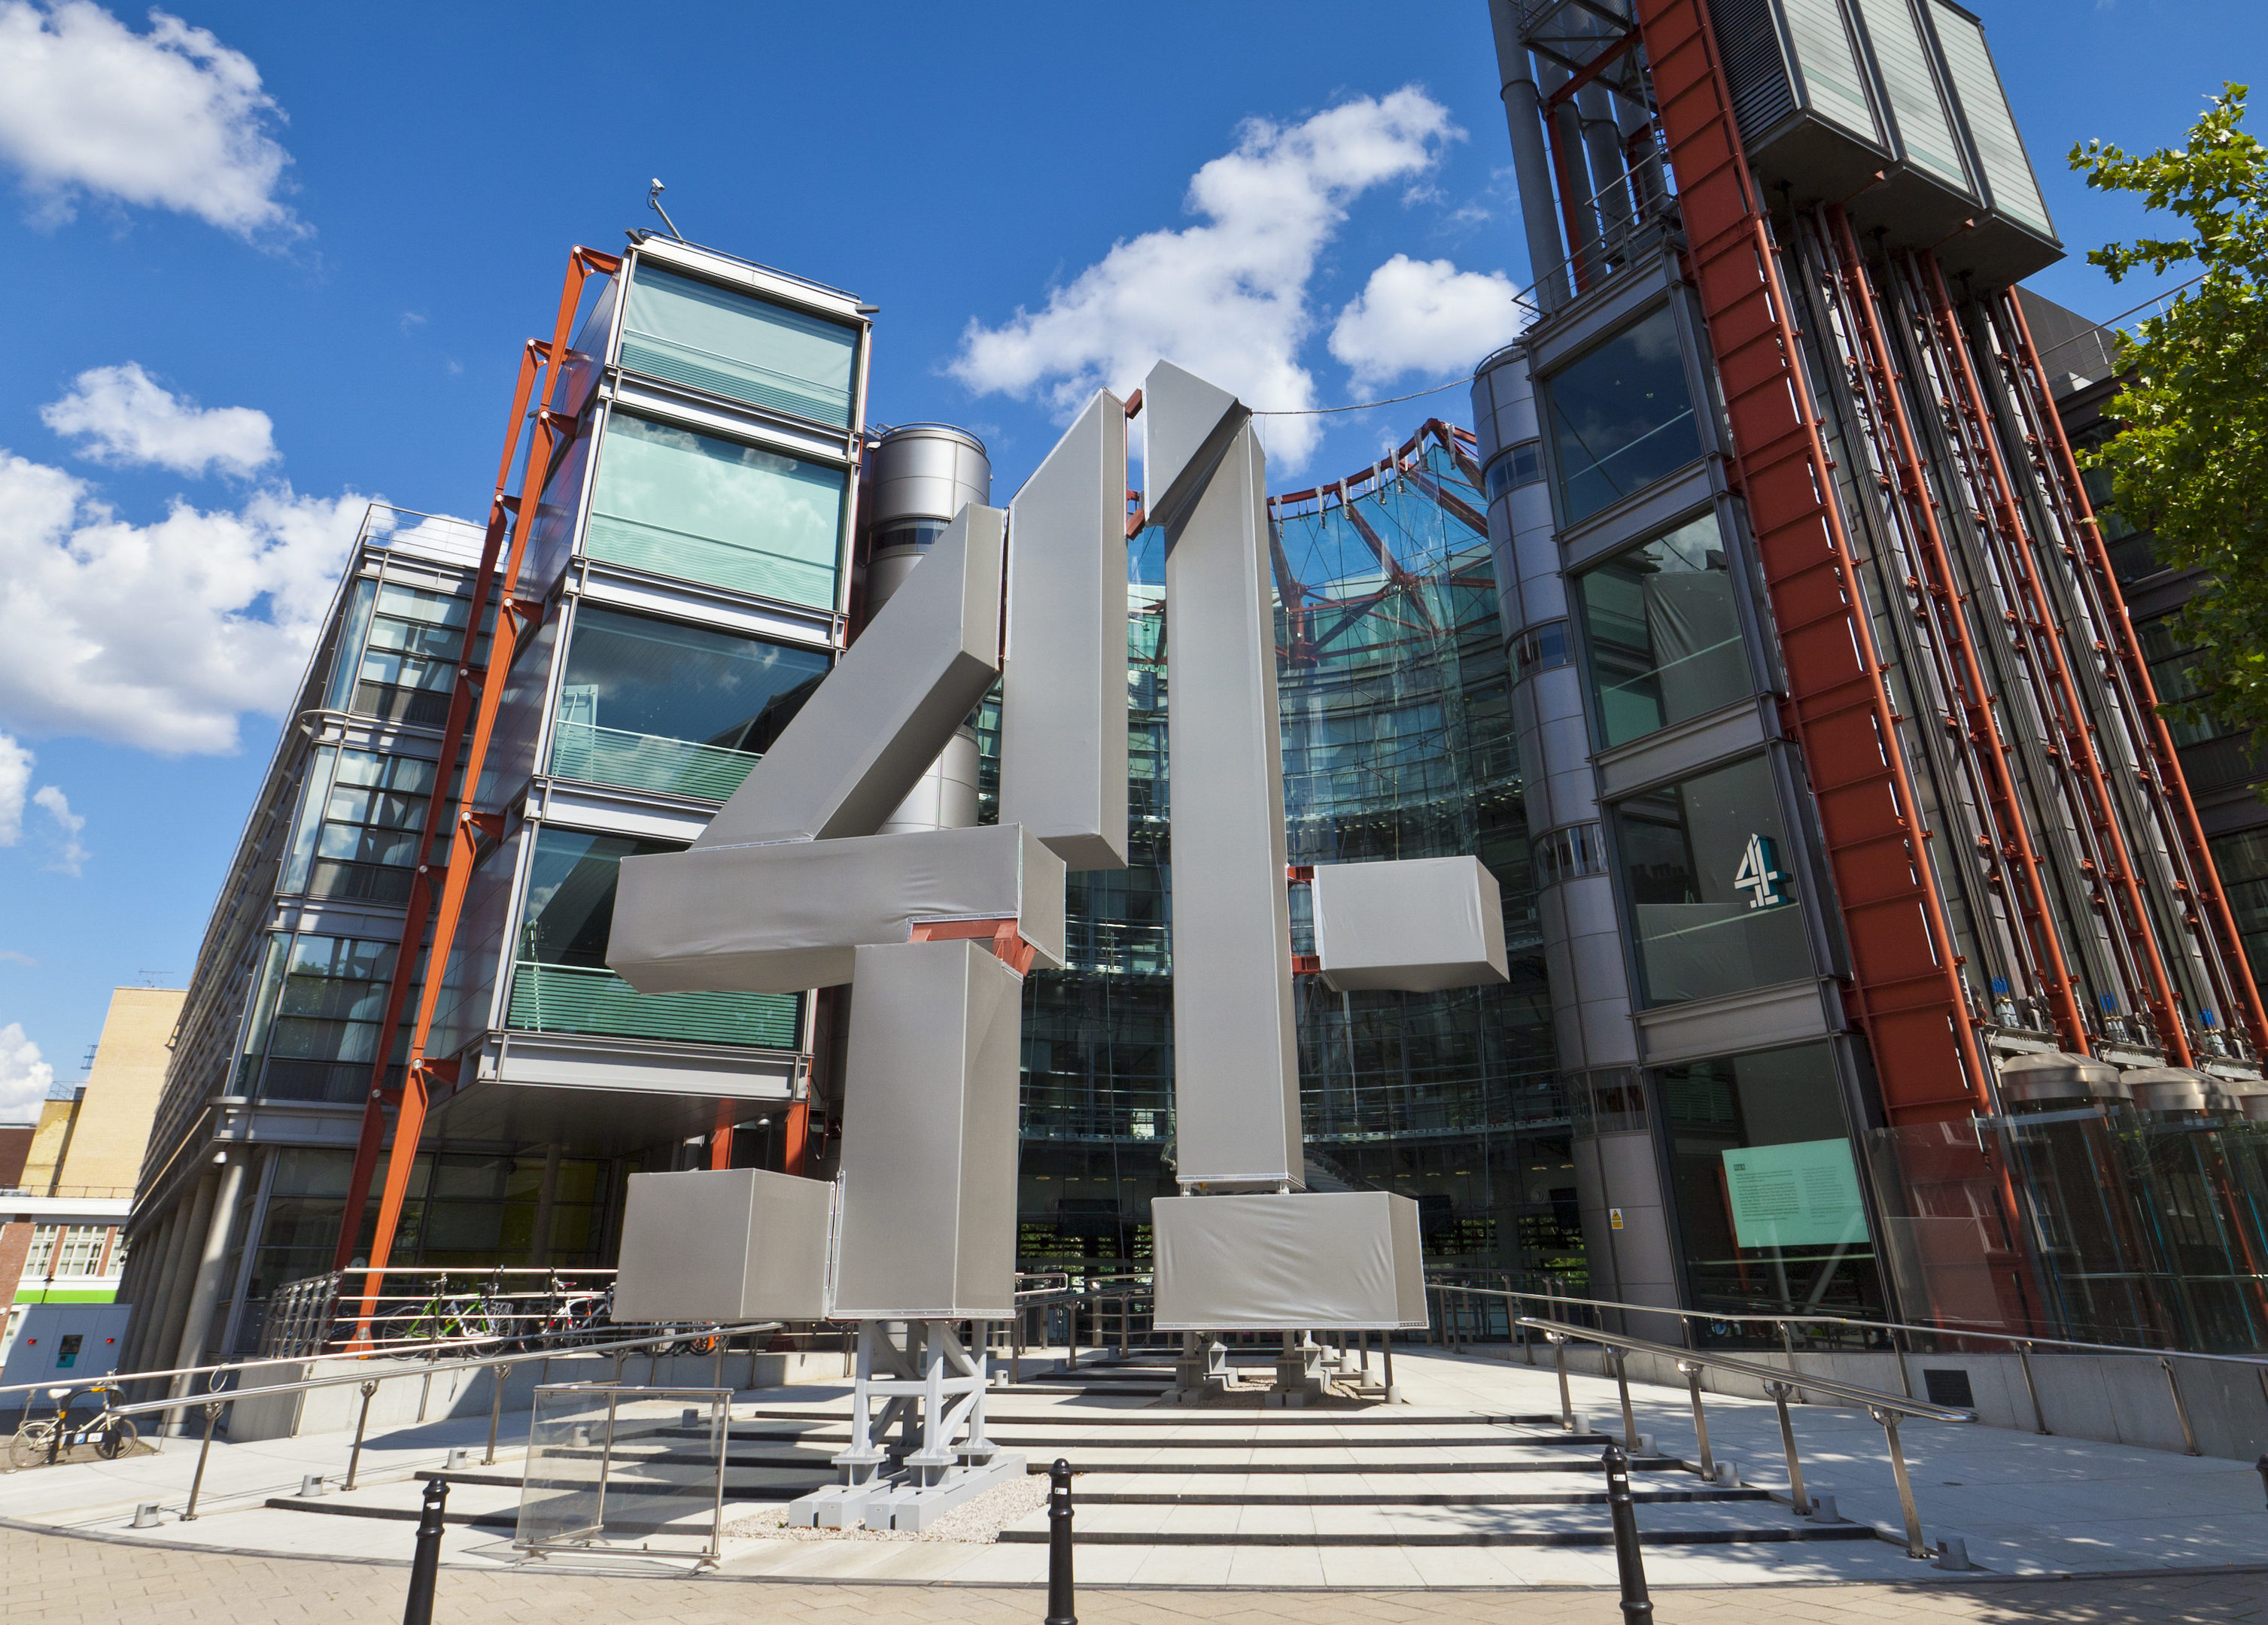 Channel Four Headquarters in London (Getty Images/iStock)